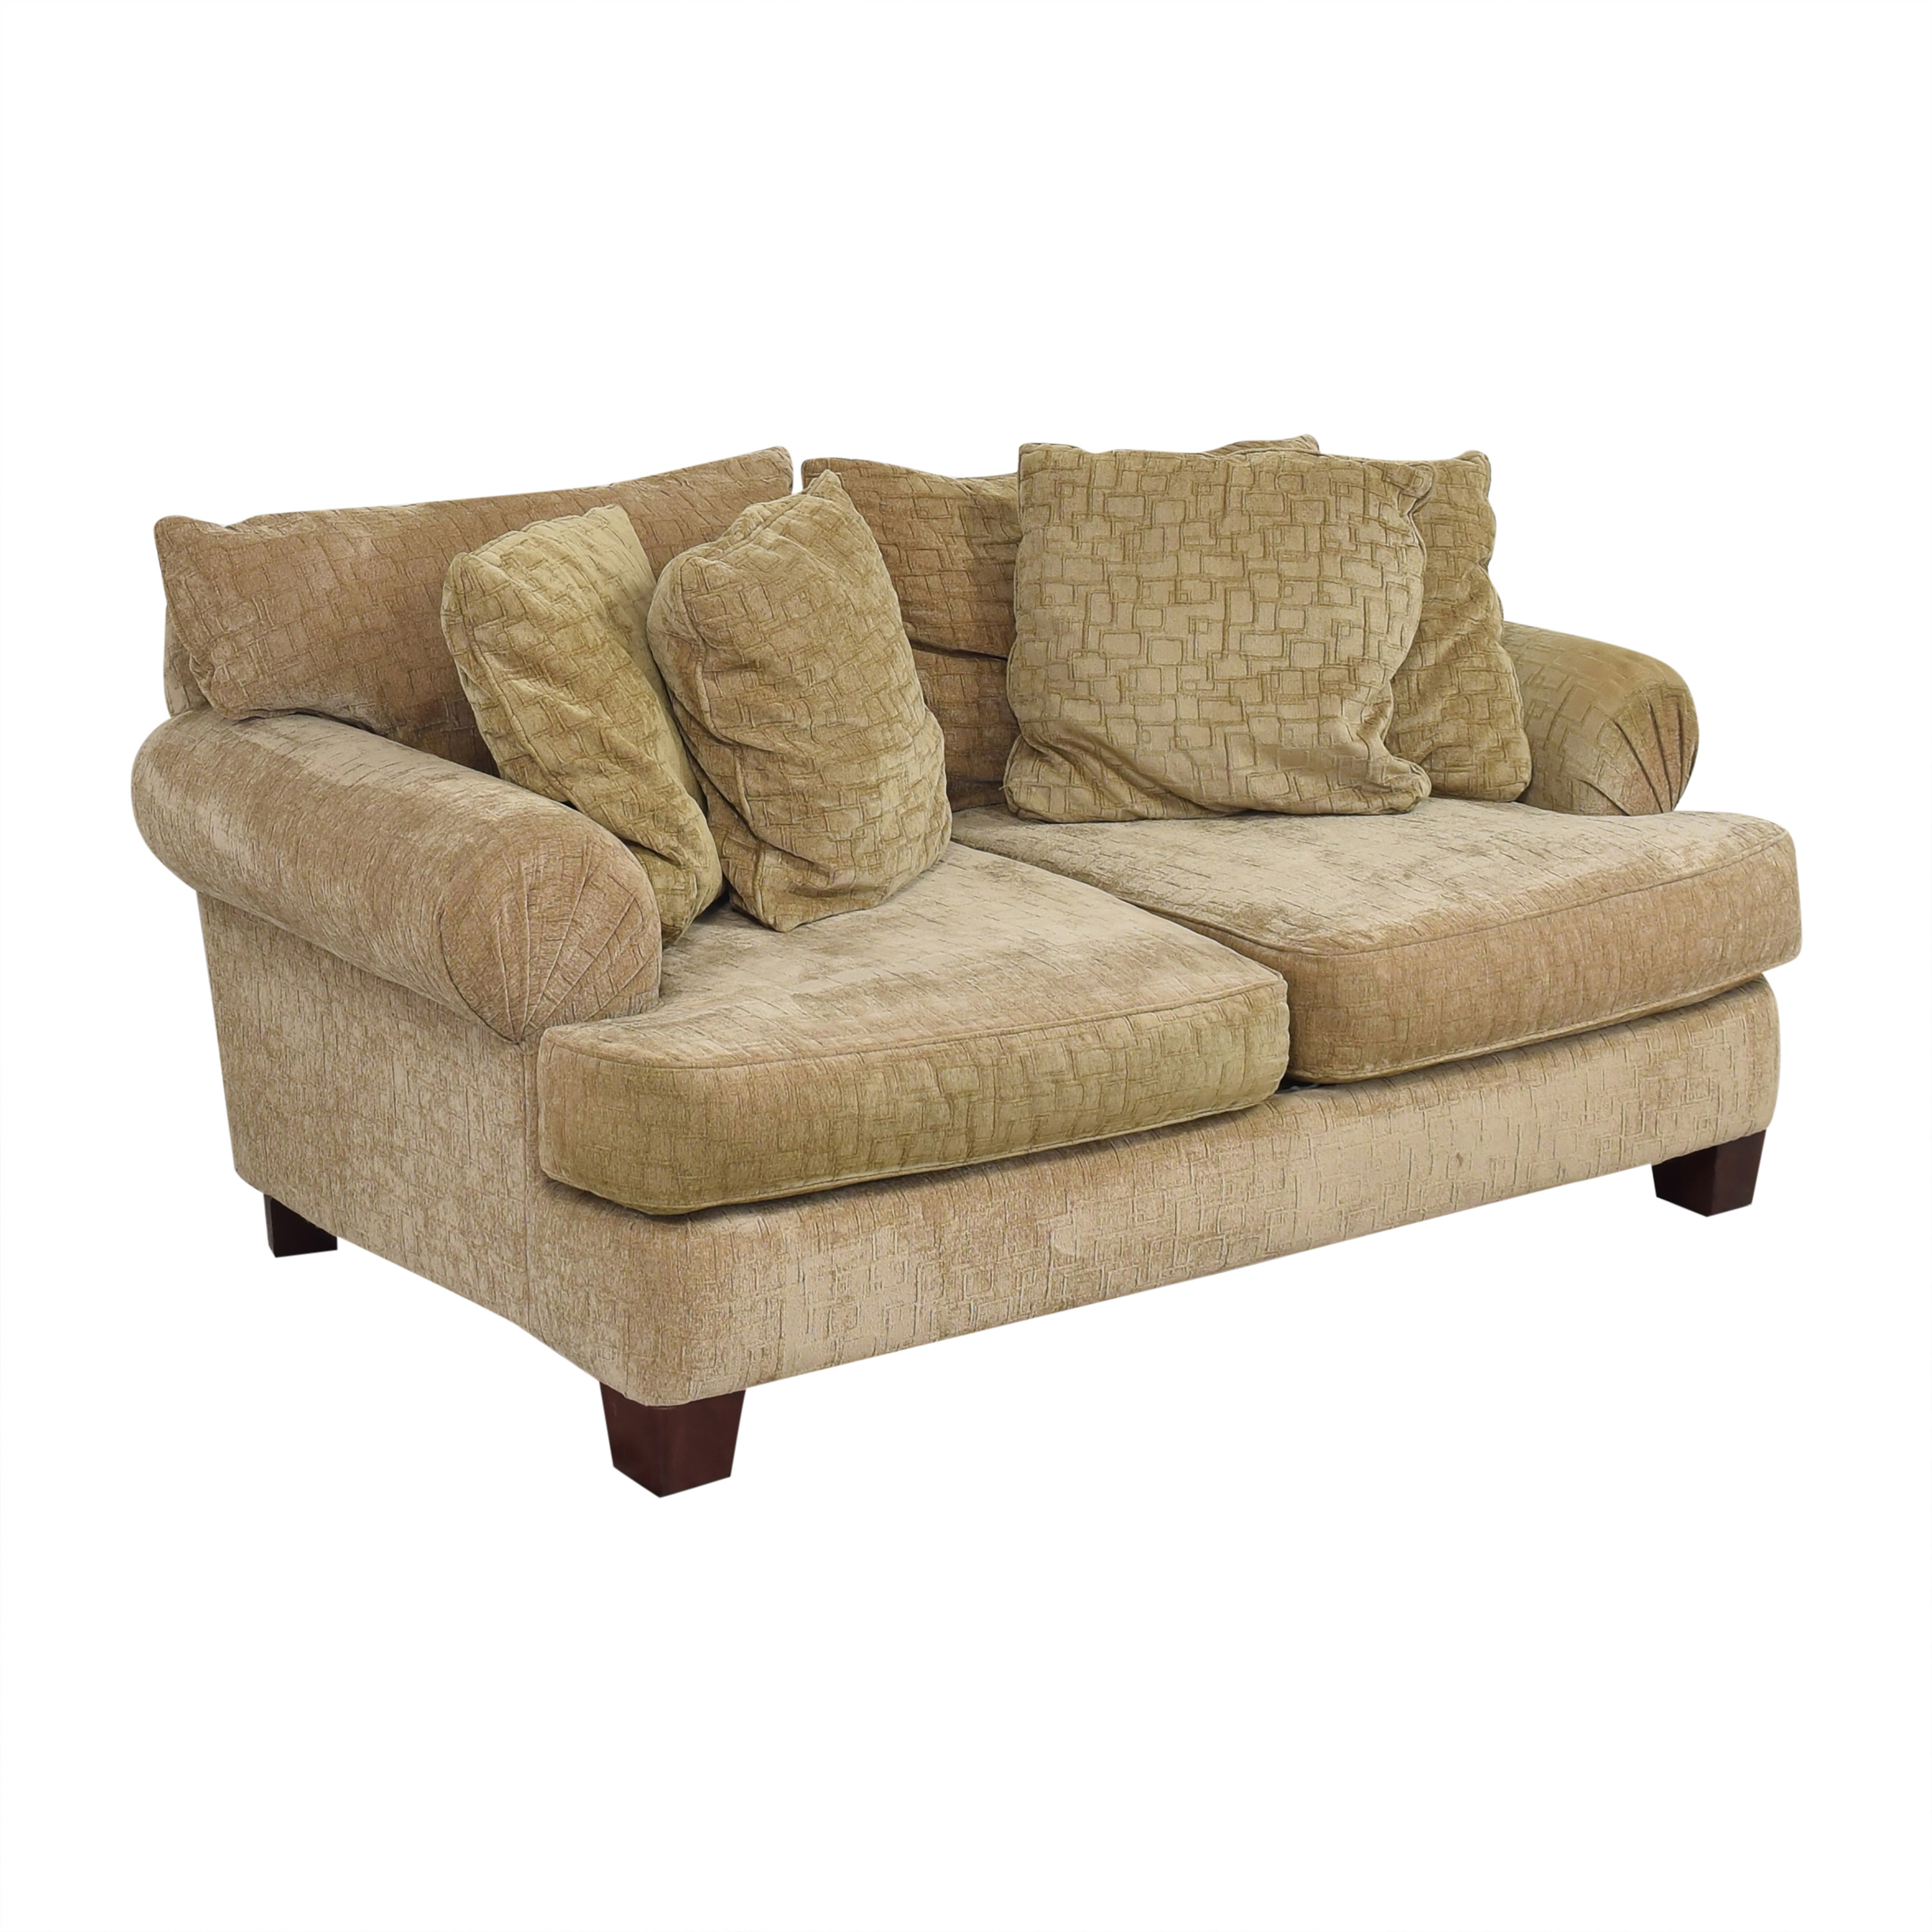 Klaussner Klaussner Two Cushion Sofa second hand